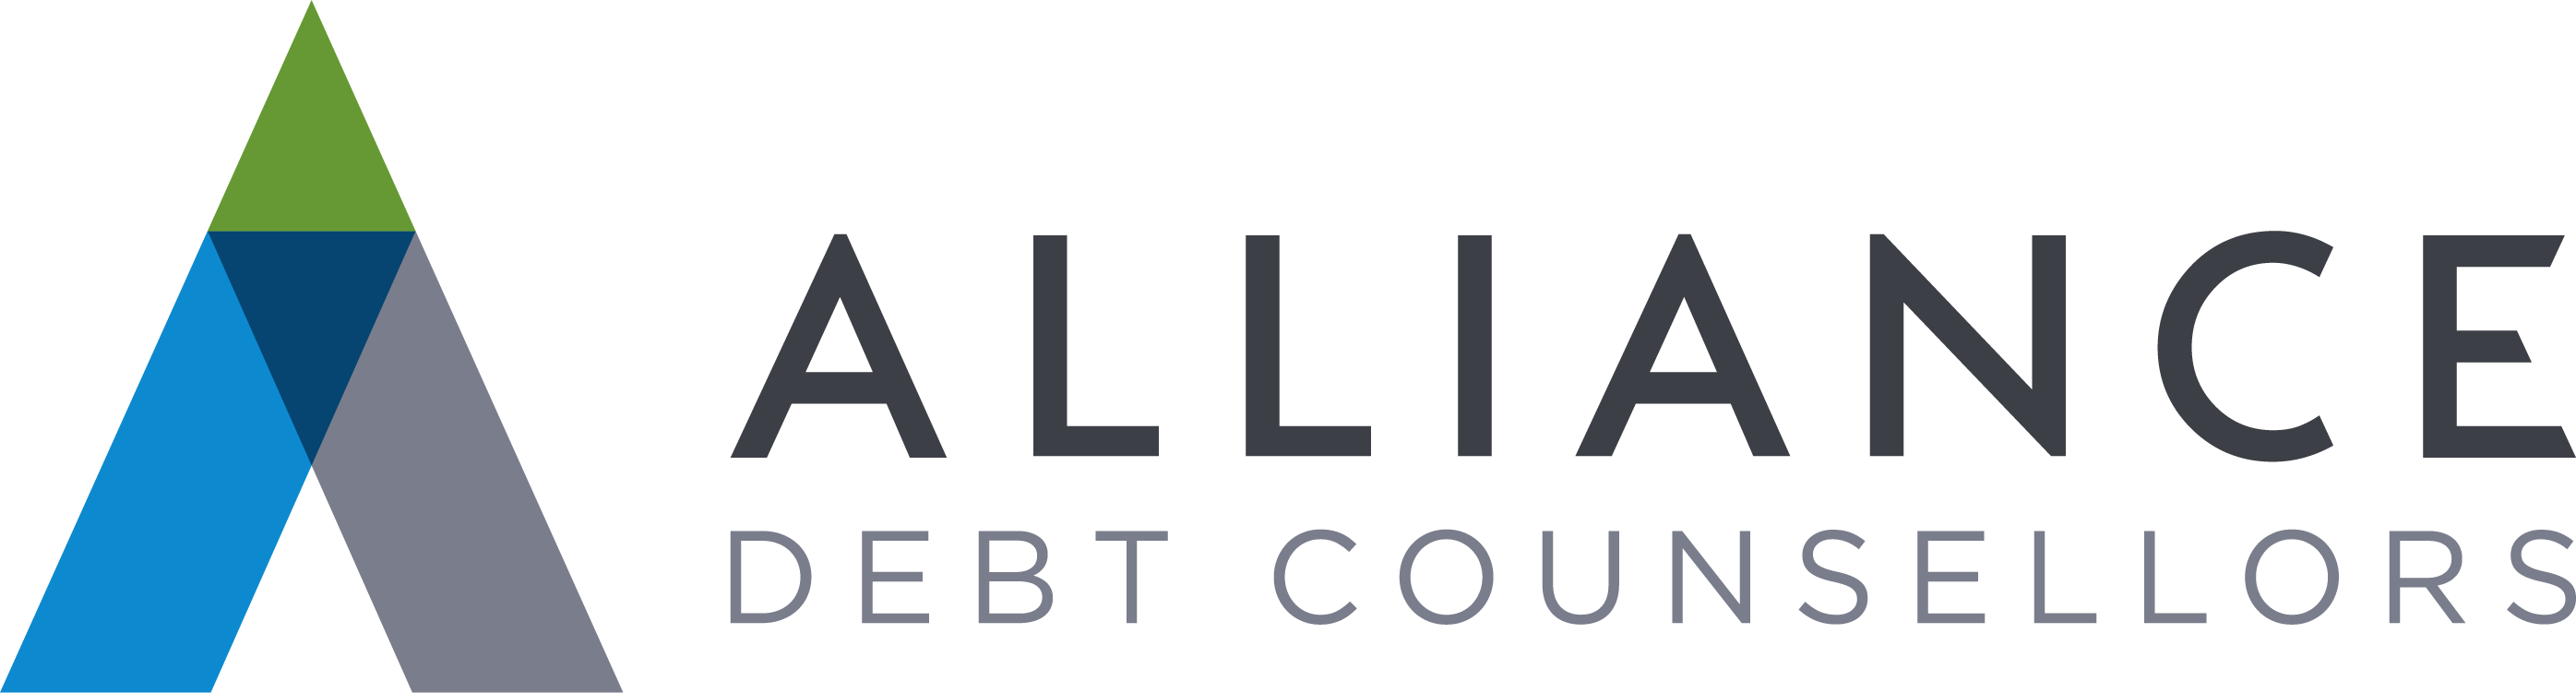 Alliance Debt Counsellors